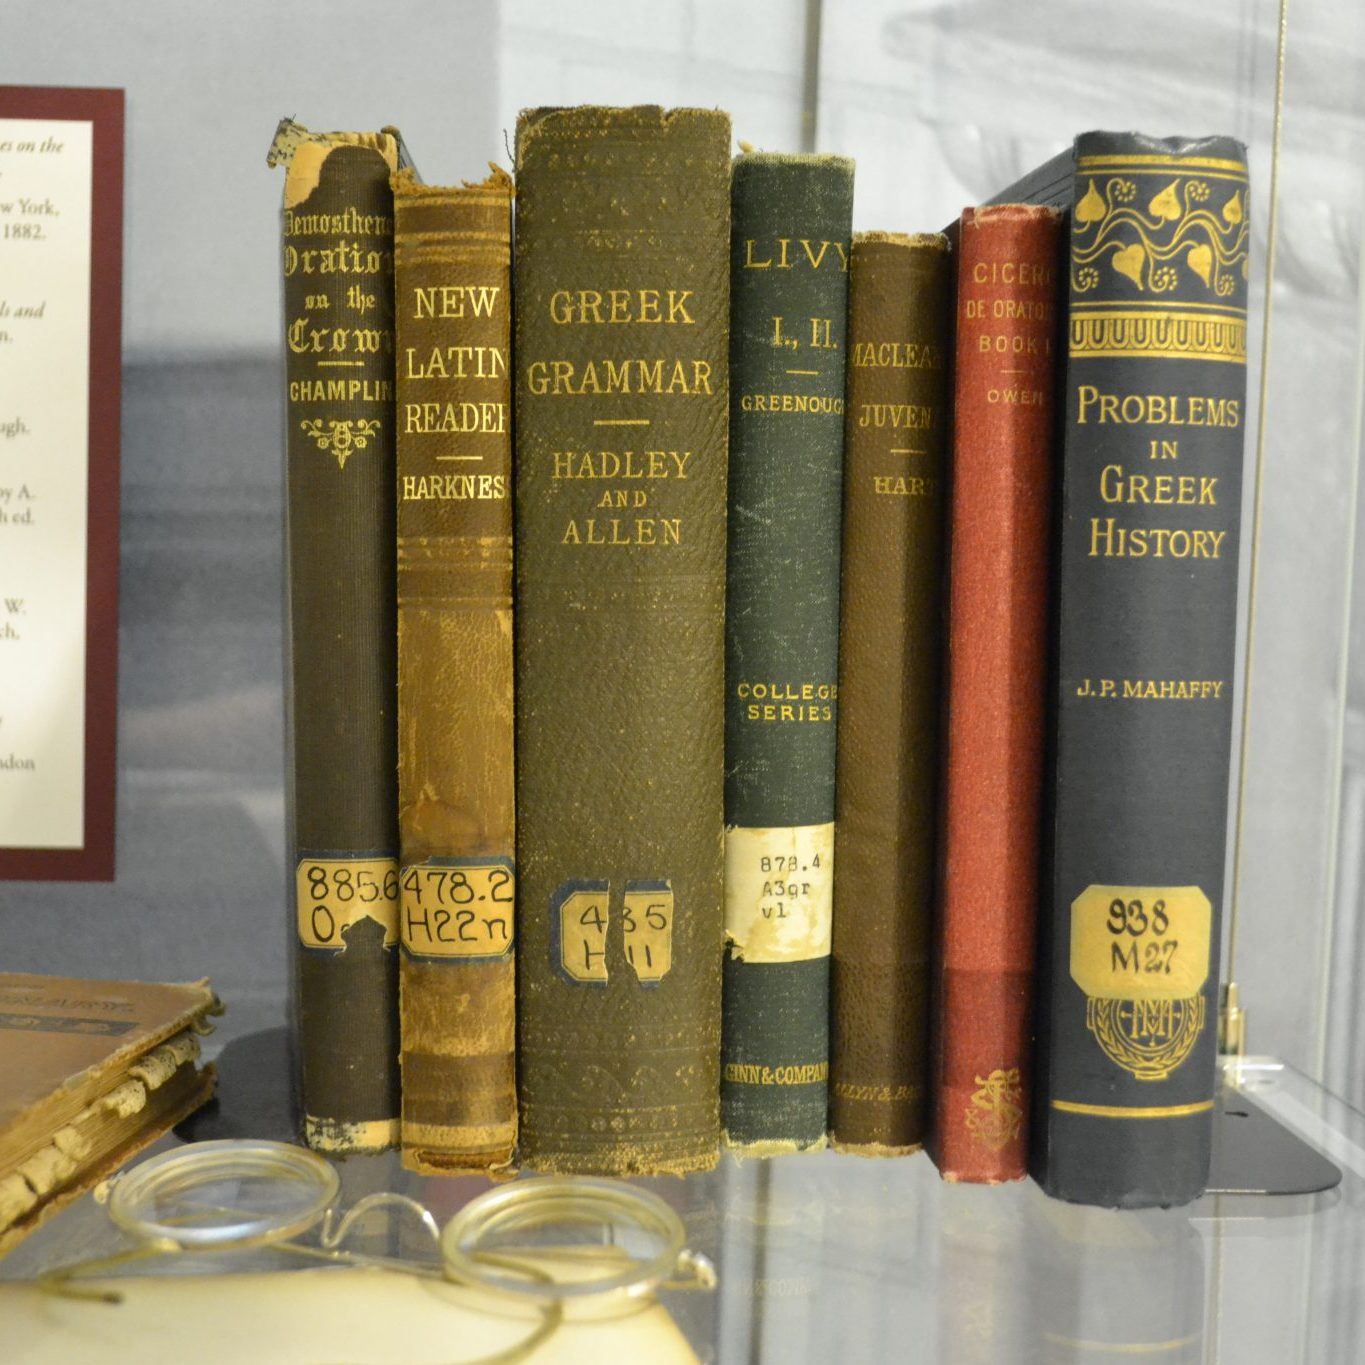 <p>Textbooks from the 1890's desk in Exhibition.</p><p>Photo by Erica Hiddink.</p>